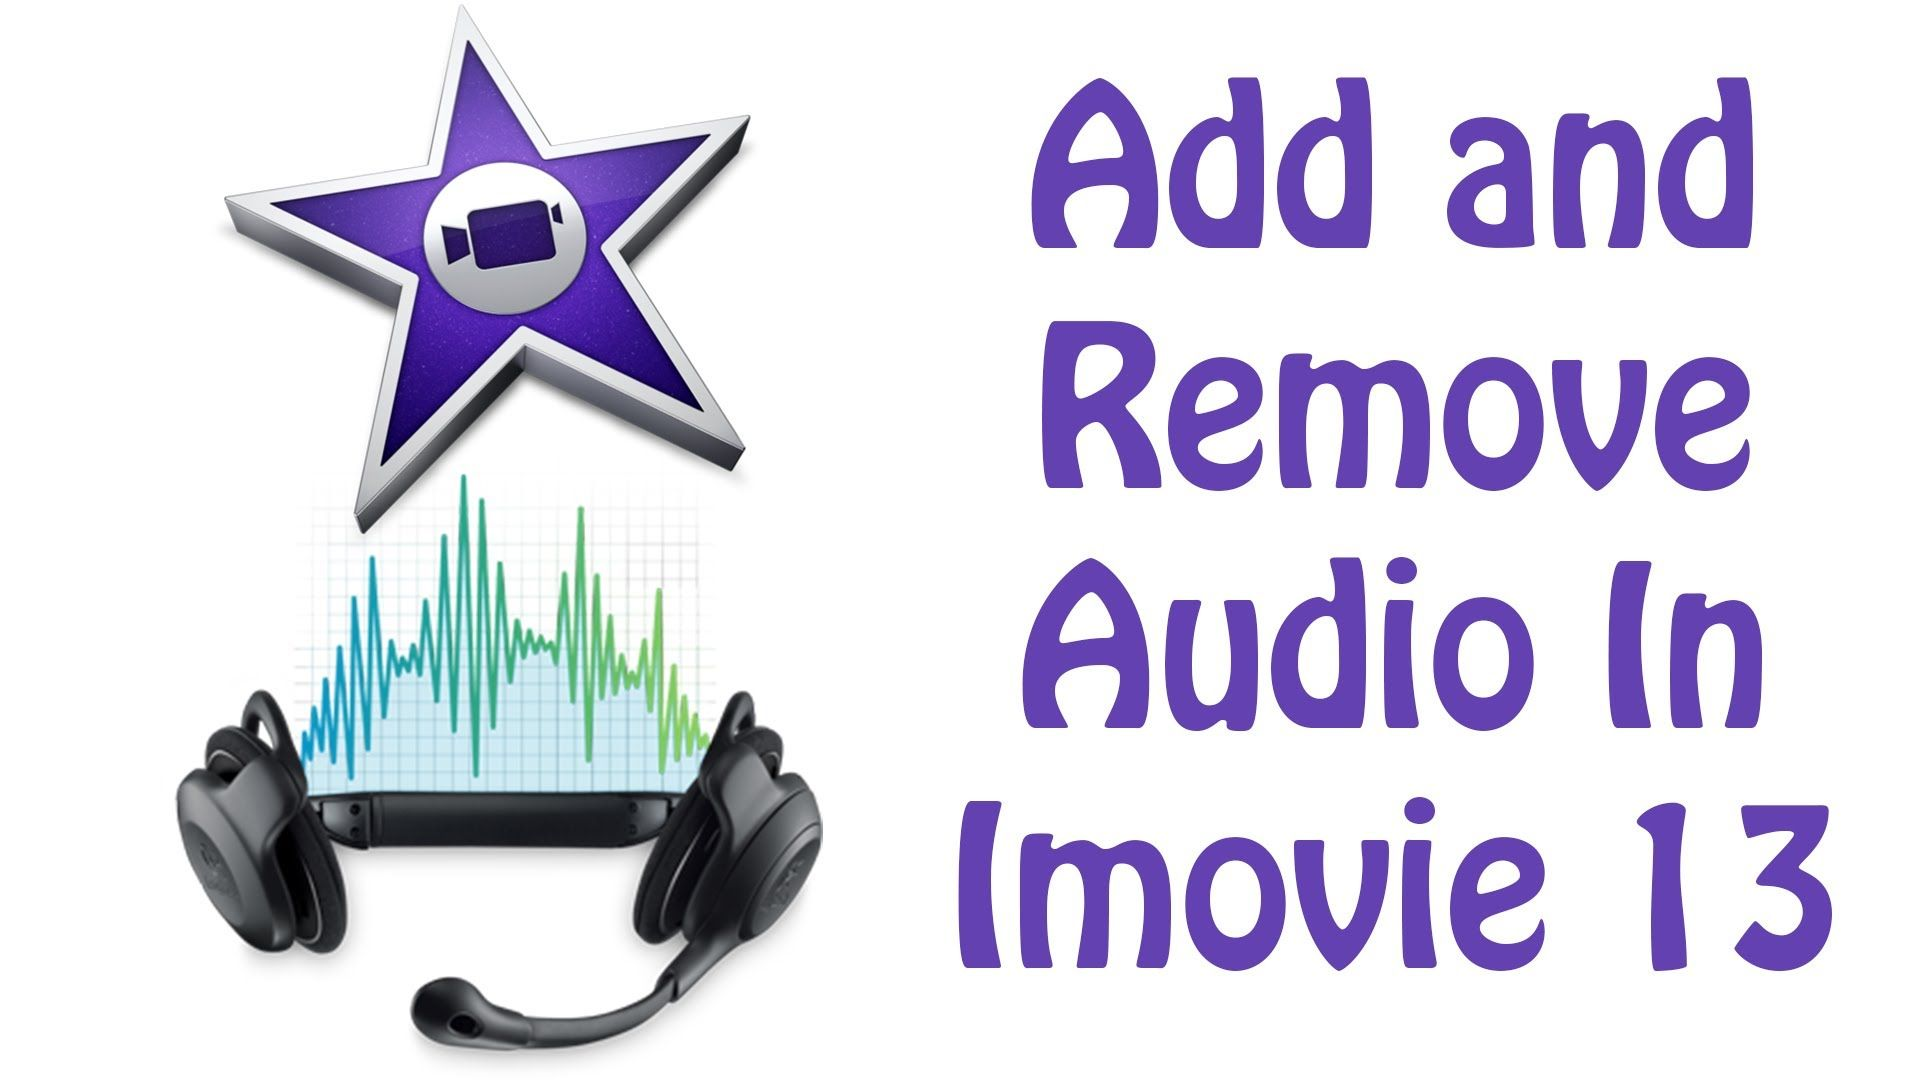 iMoive 2013 Tutoiral - How To Add and Remove Audio